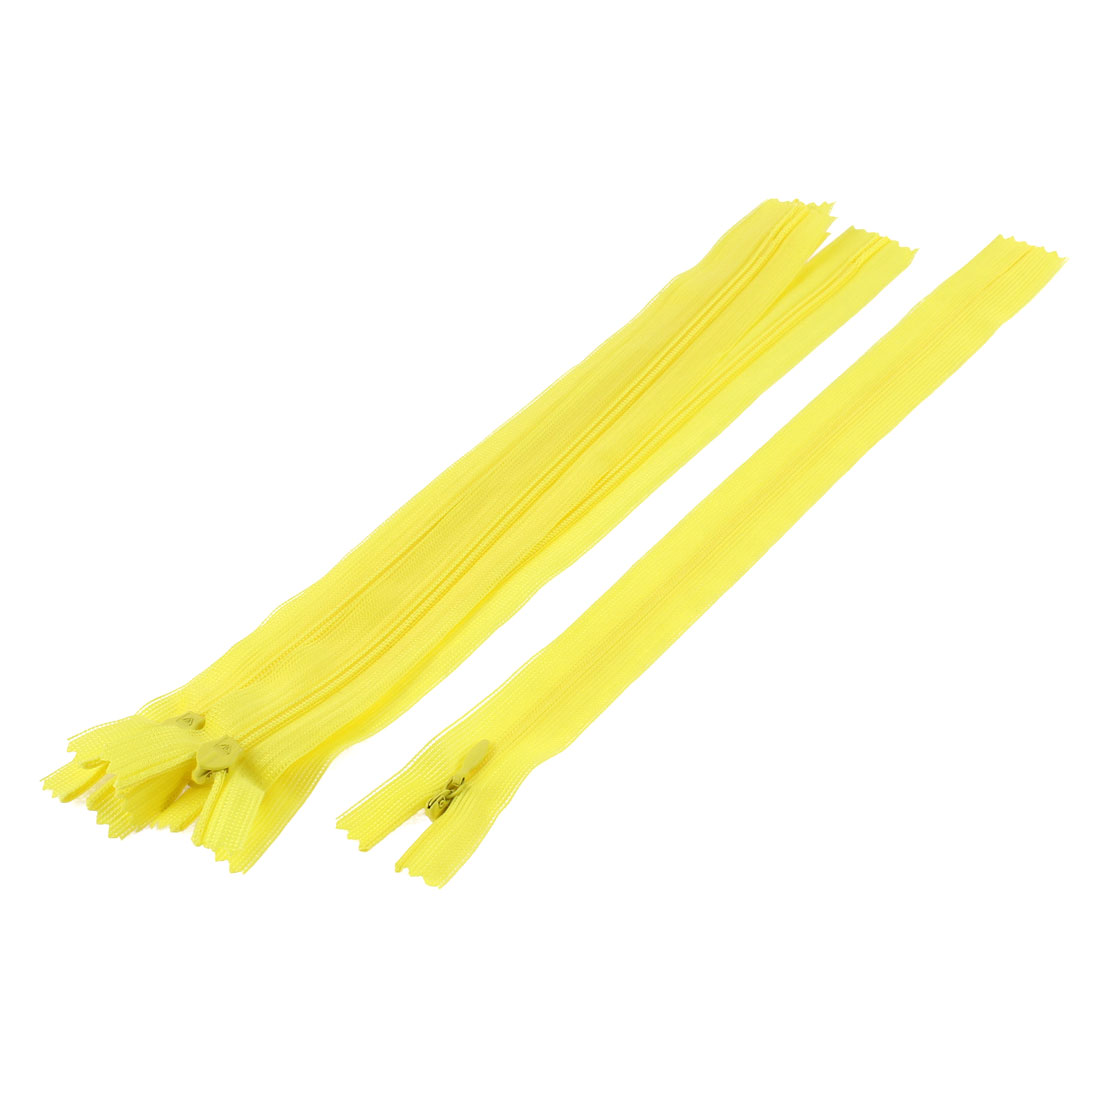 Dress Pants Closed End Nylon Zippers Tailor Sewing Craft Tool Yellow 25cm 5 Pcs